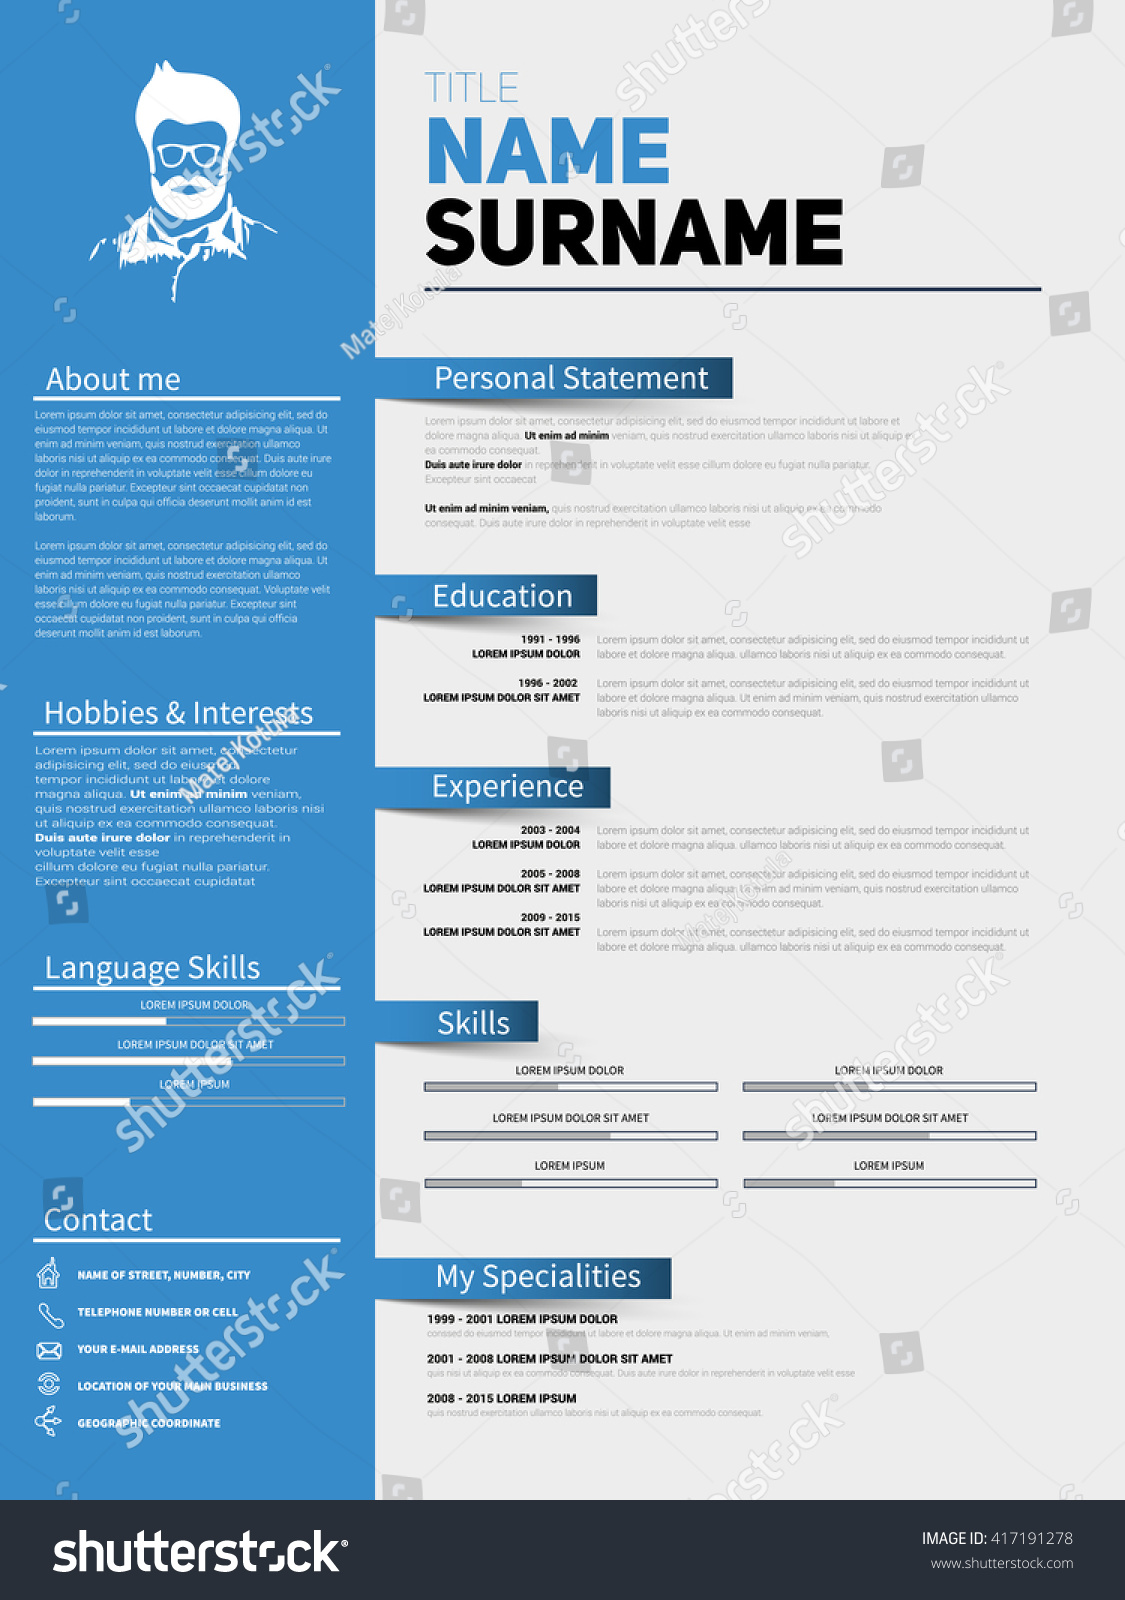 Simple Design Resume Resume Template Simple Professional Resume